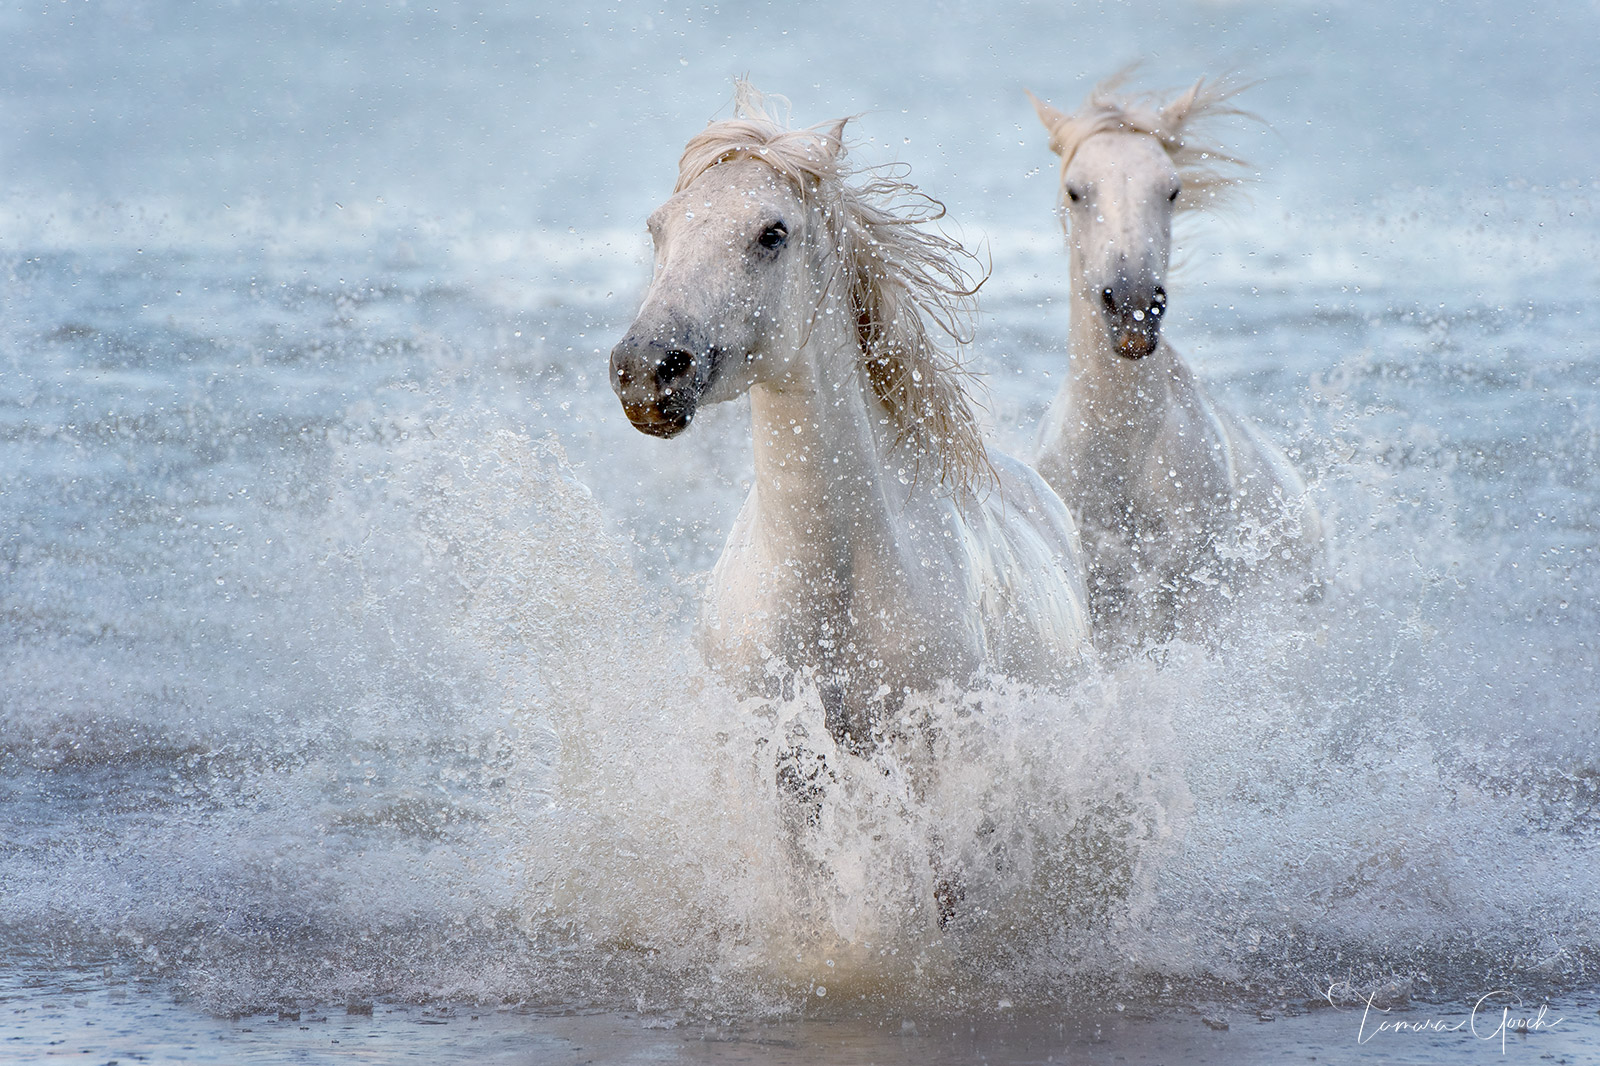 Photo wall art work of the white horses of the Camargue. Gallery quailty, custom options available.